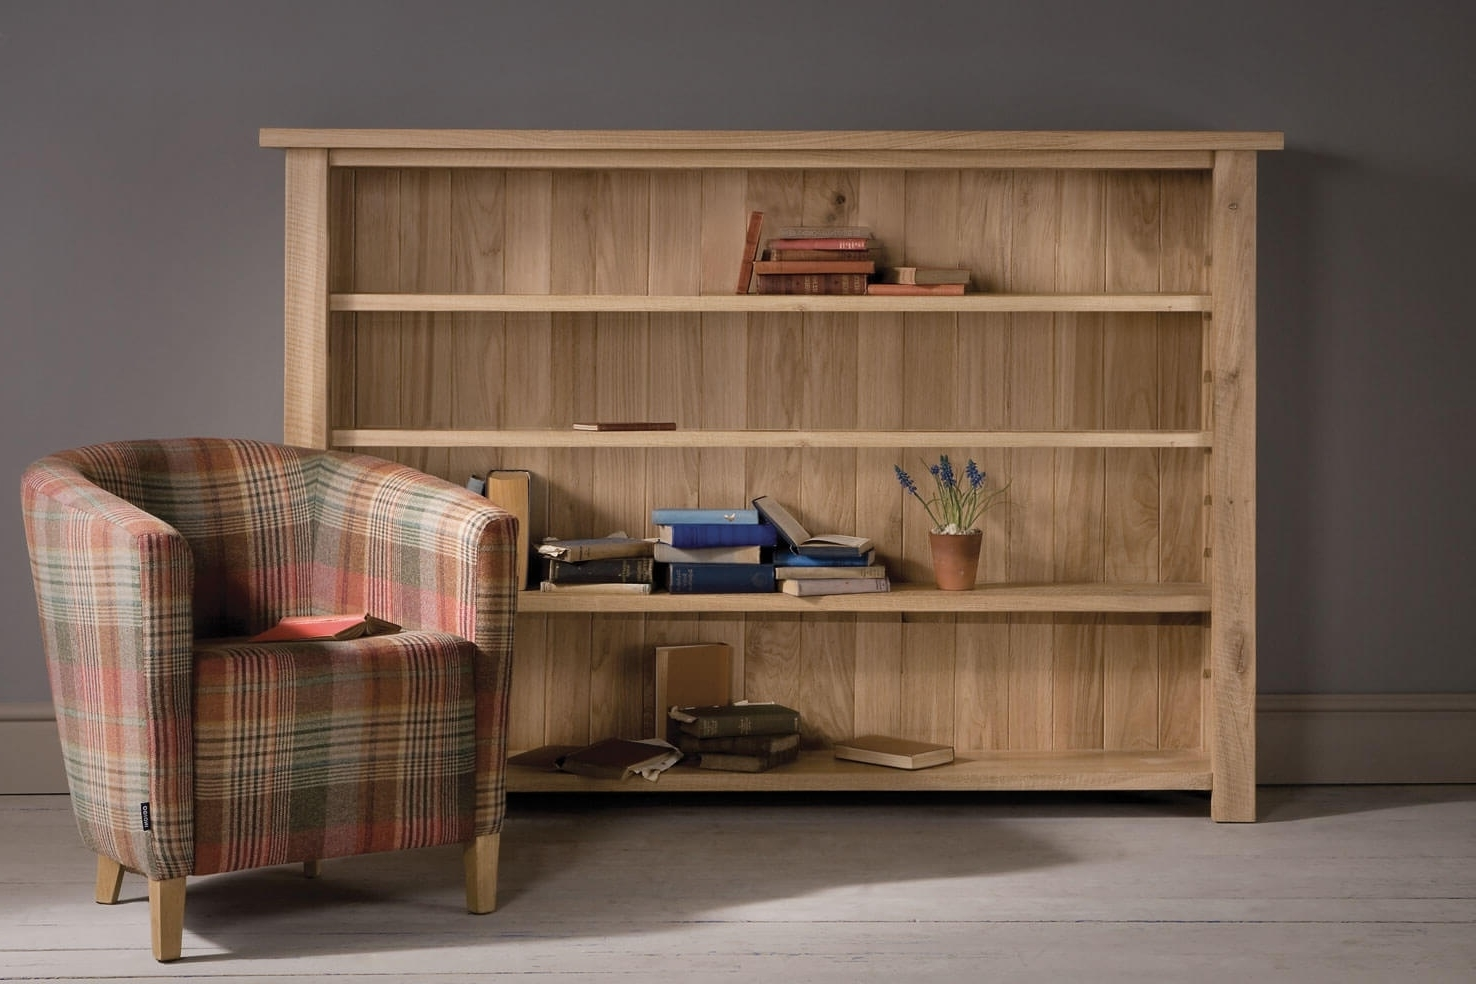 Gorgeous Oak Bookcase And Organizer — Montserrat Home Design For Most Current Oak Bookcases (Gallery 11 of 15)